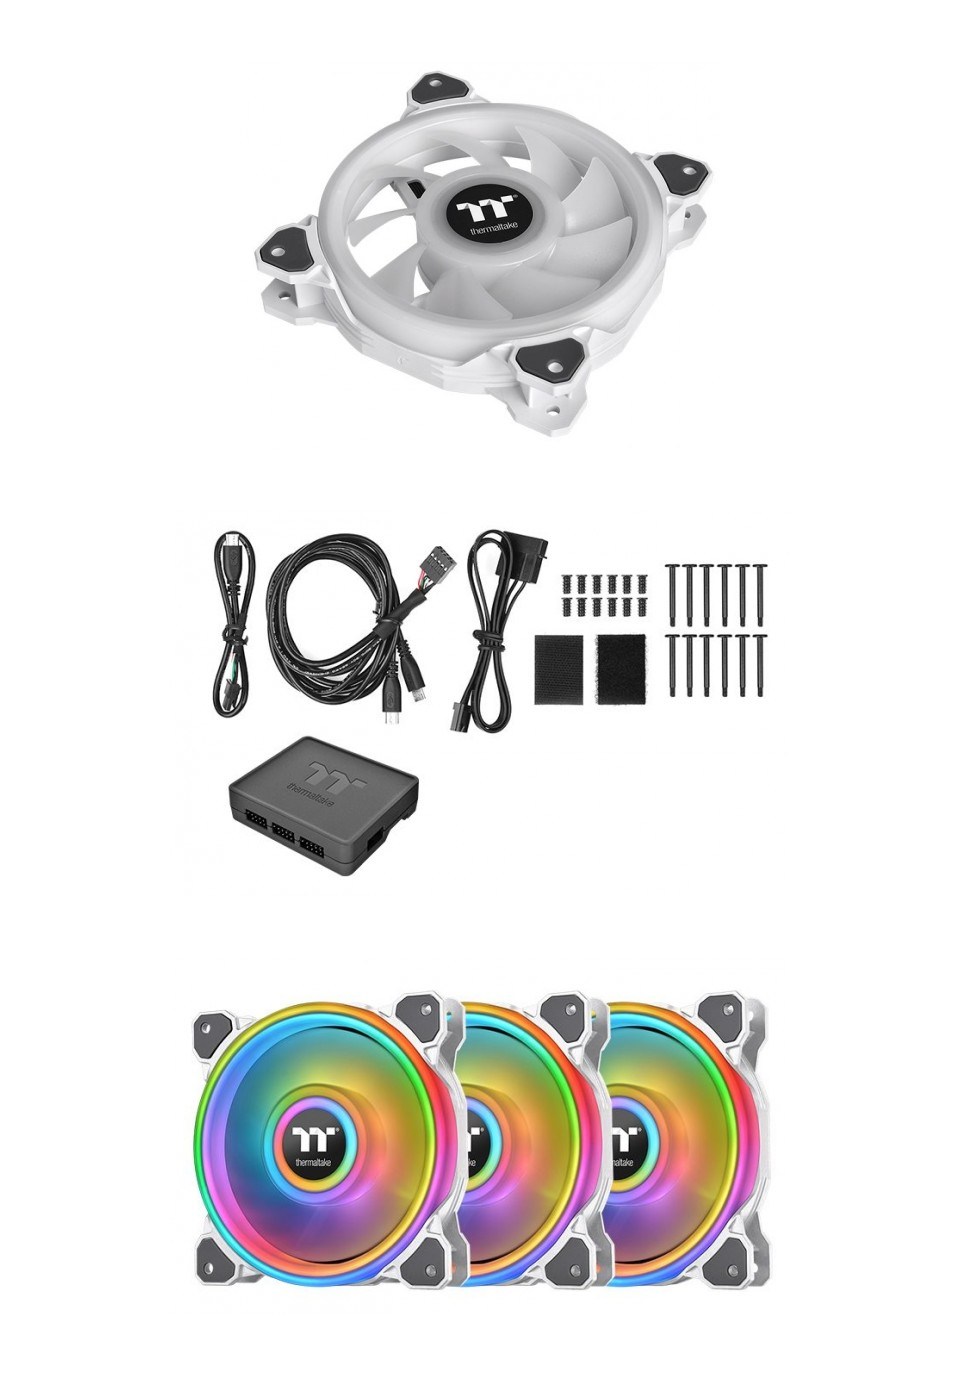 Thermaltake Riing Quad 14 RGB Radiator 140MM Fan 3 Pack White product